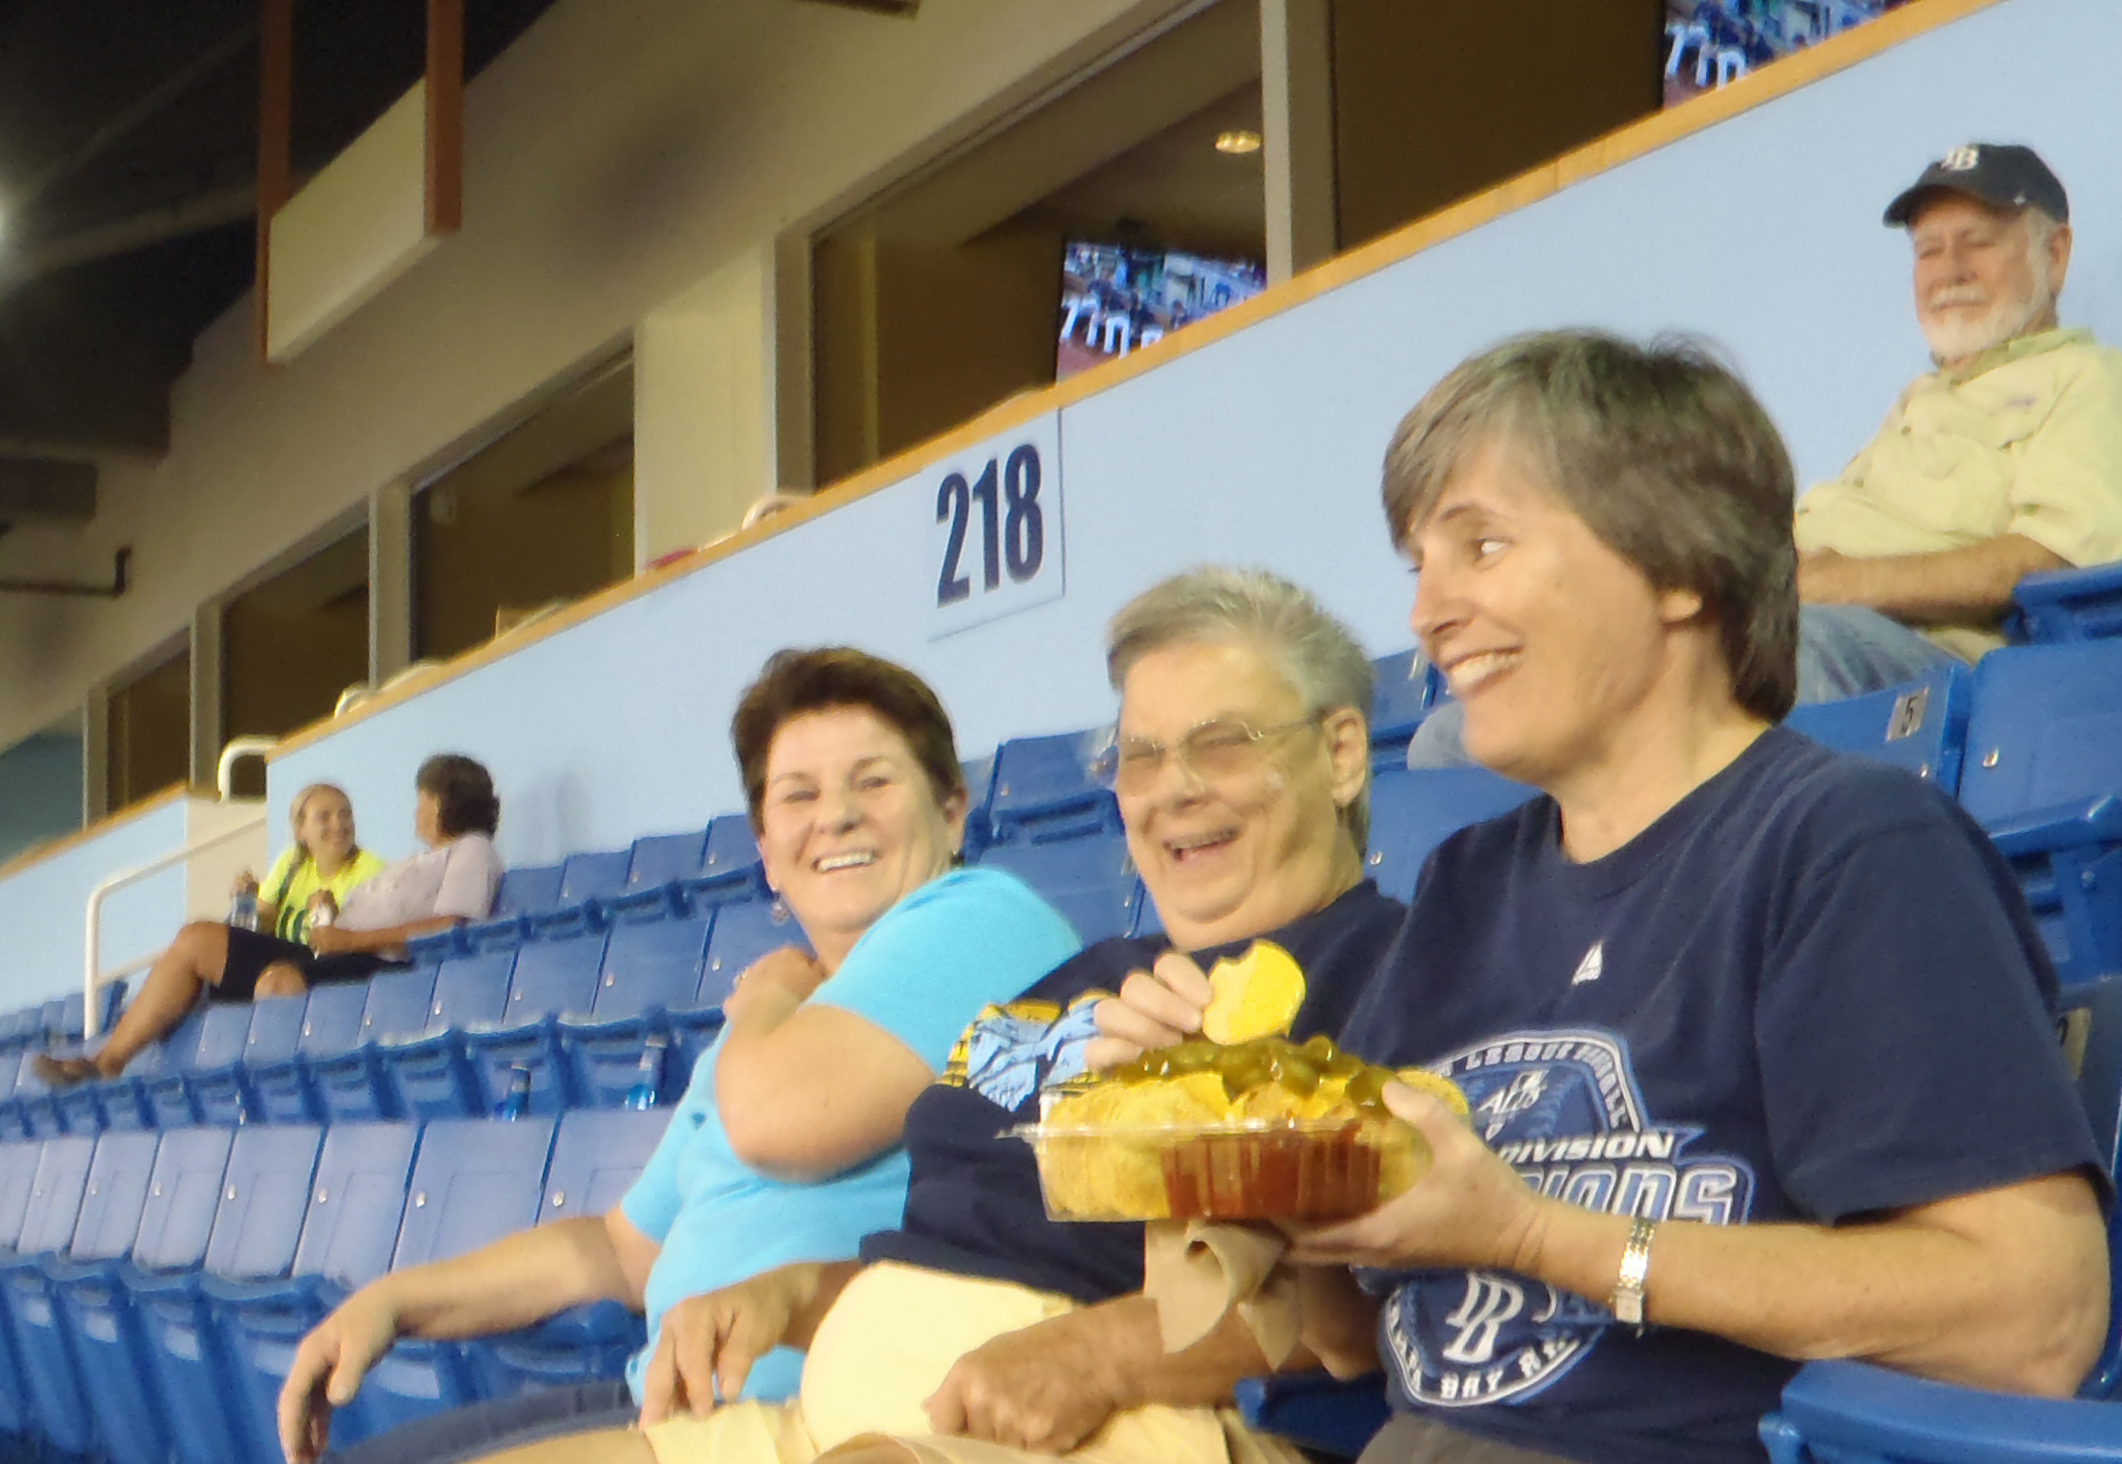 Having fun and food at Tropicana Field